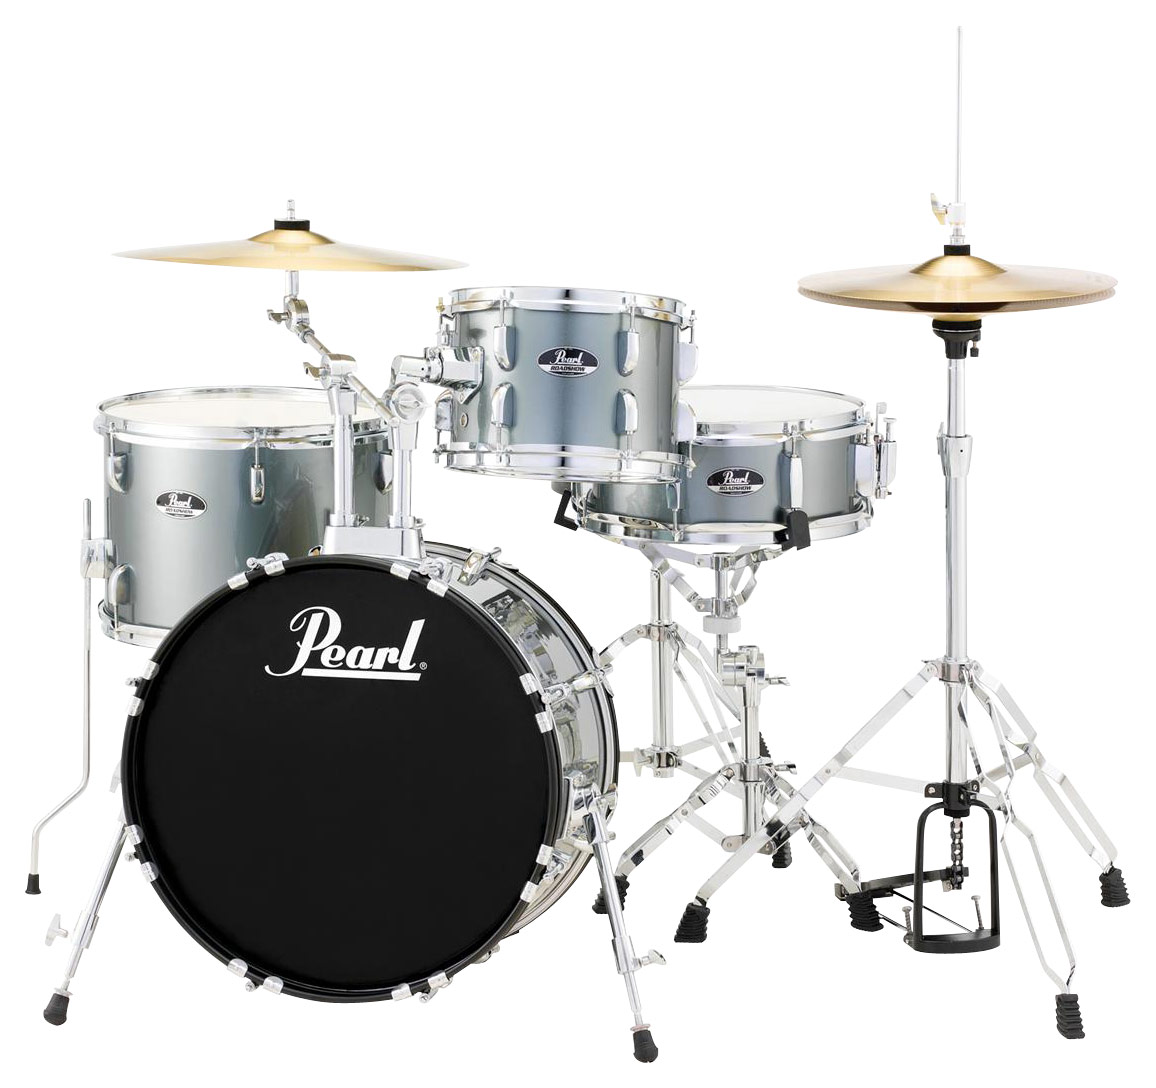 Pearl Drums Roadshow 4 Piece Drum Set Gray DRSRS584CC706   Best Buy Pearl Drums   Roadshow 4 Piece Drum Set   Charcoal   Larger Front